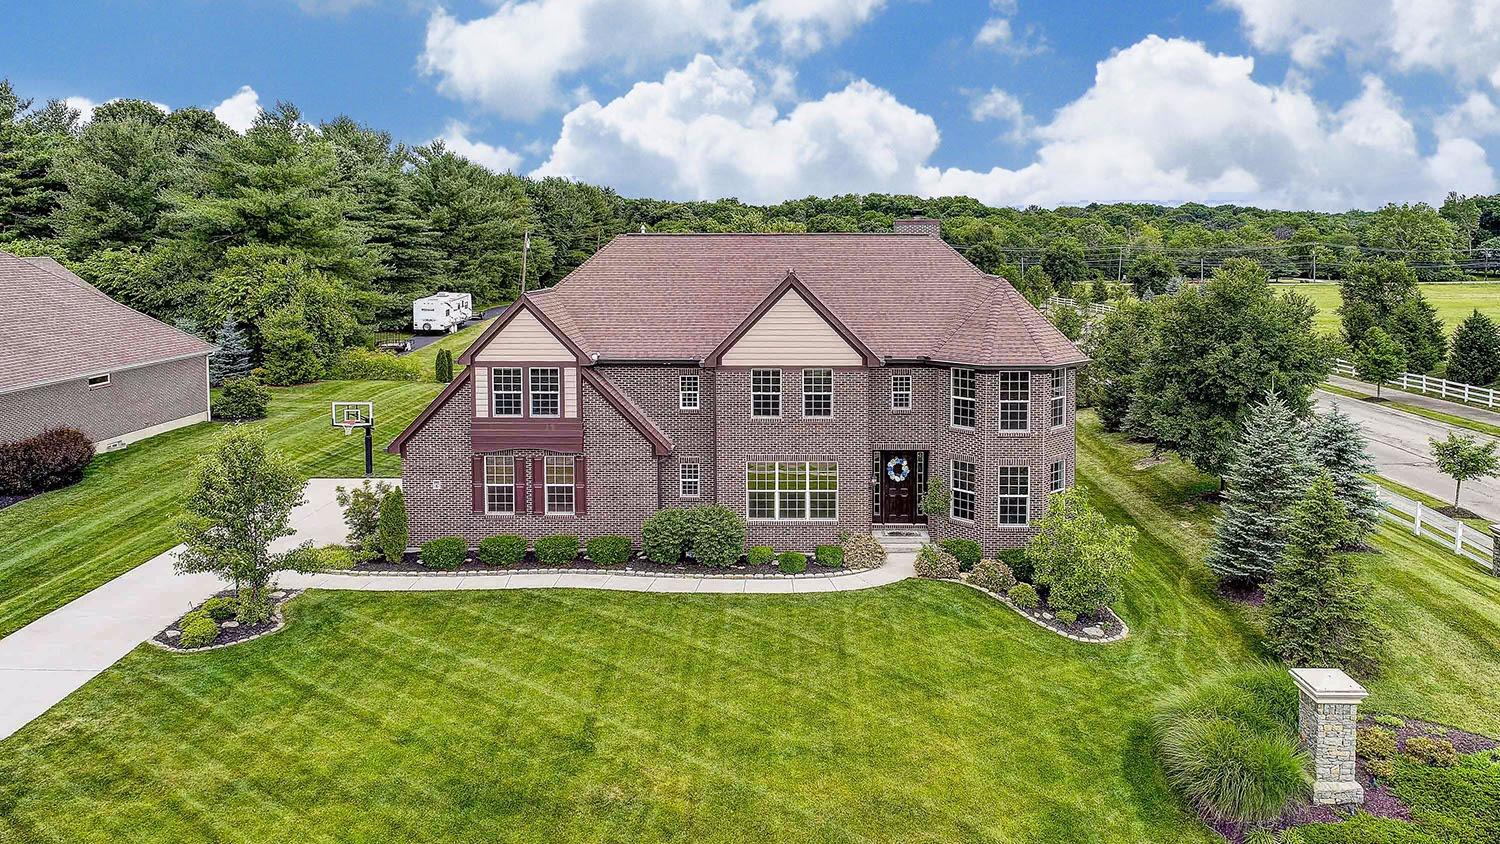 4769 Saddletop Ridge Lane, Mason, OH 45040